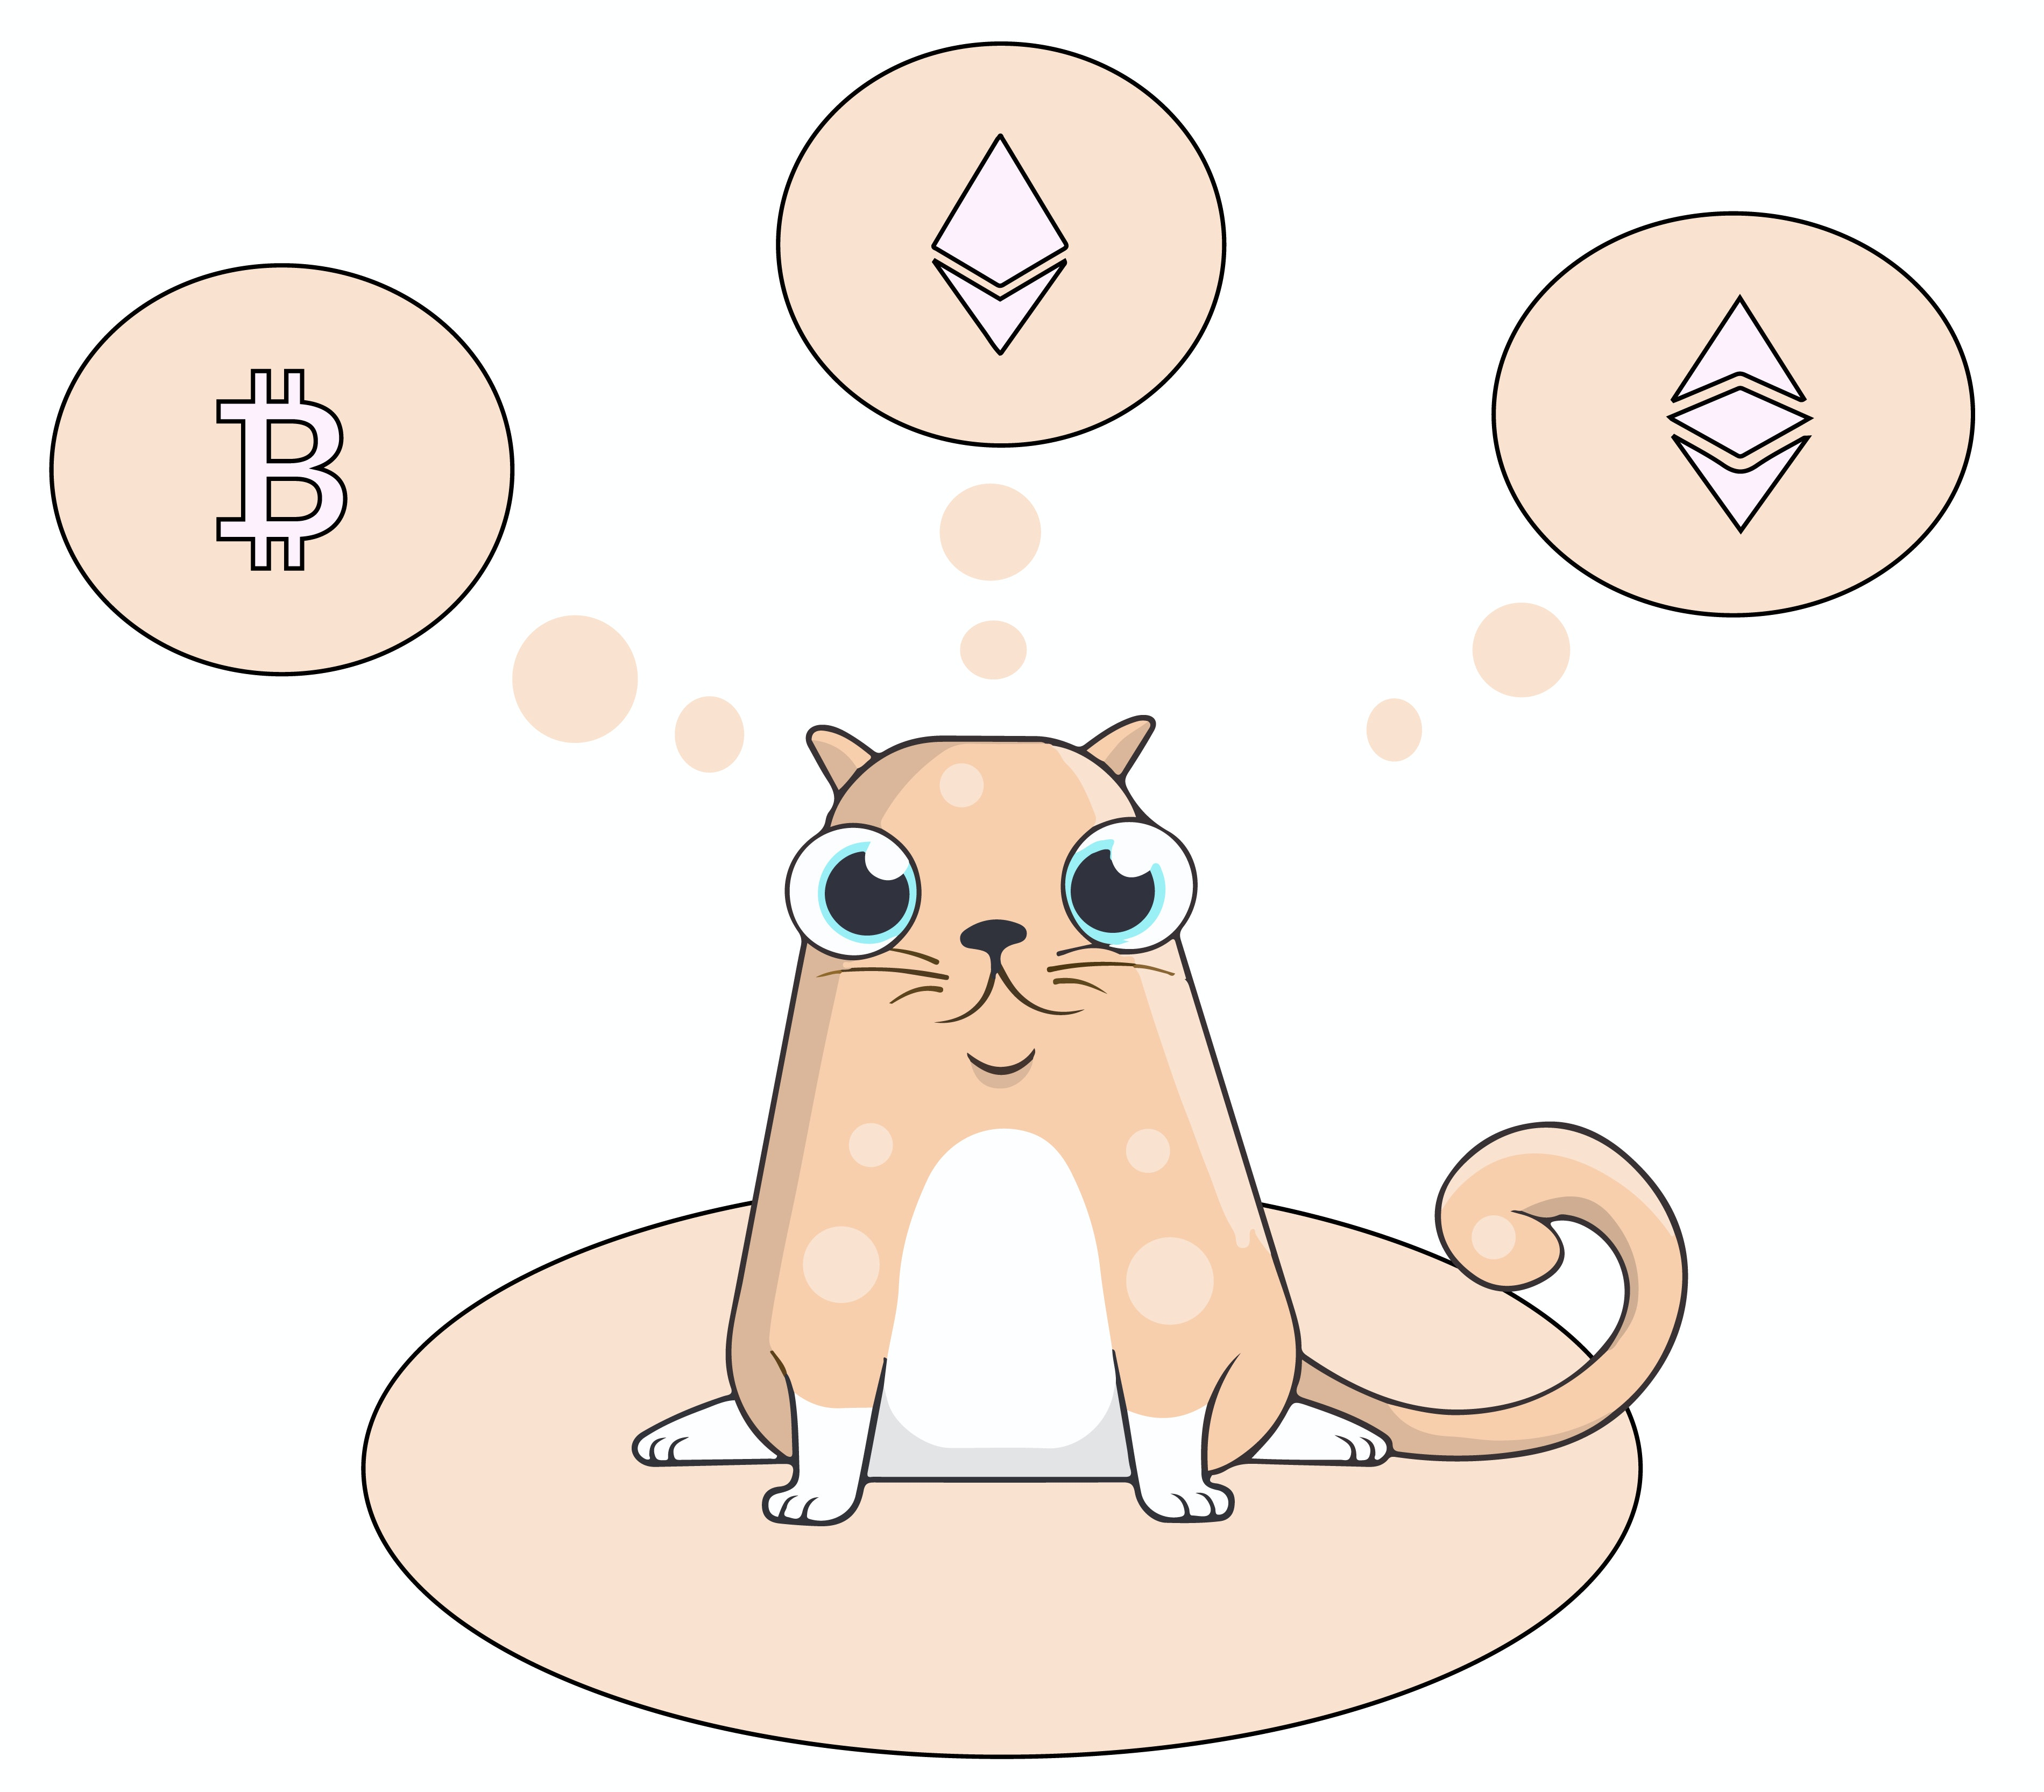 A picture of a CryptoKitty